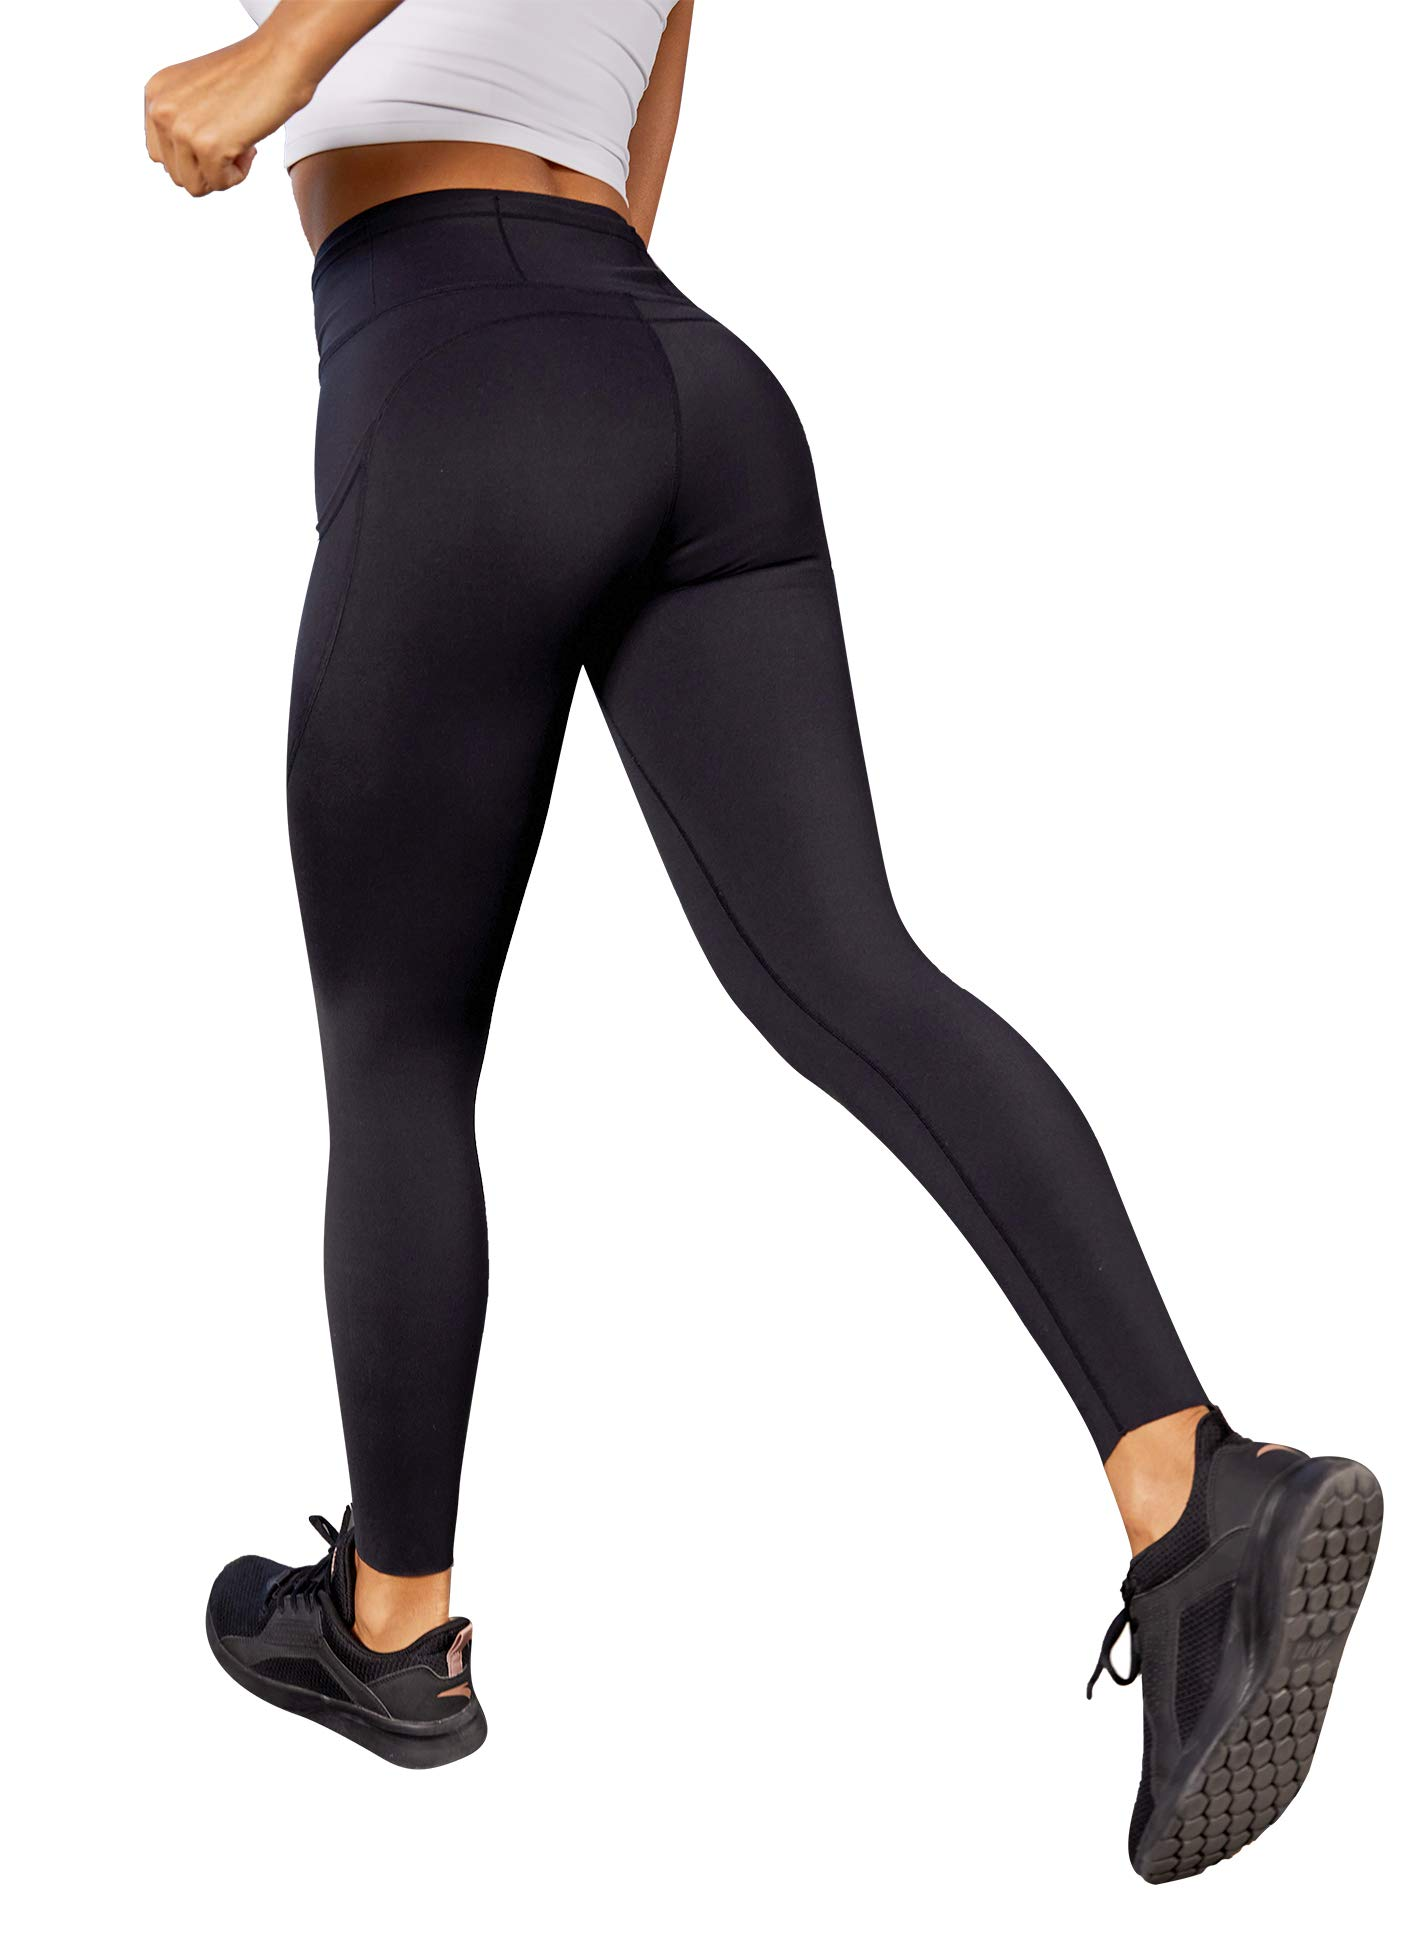 BATHRINS High Waist Yoga Pants with 7 Pockets for Women 4 Way